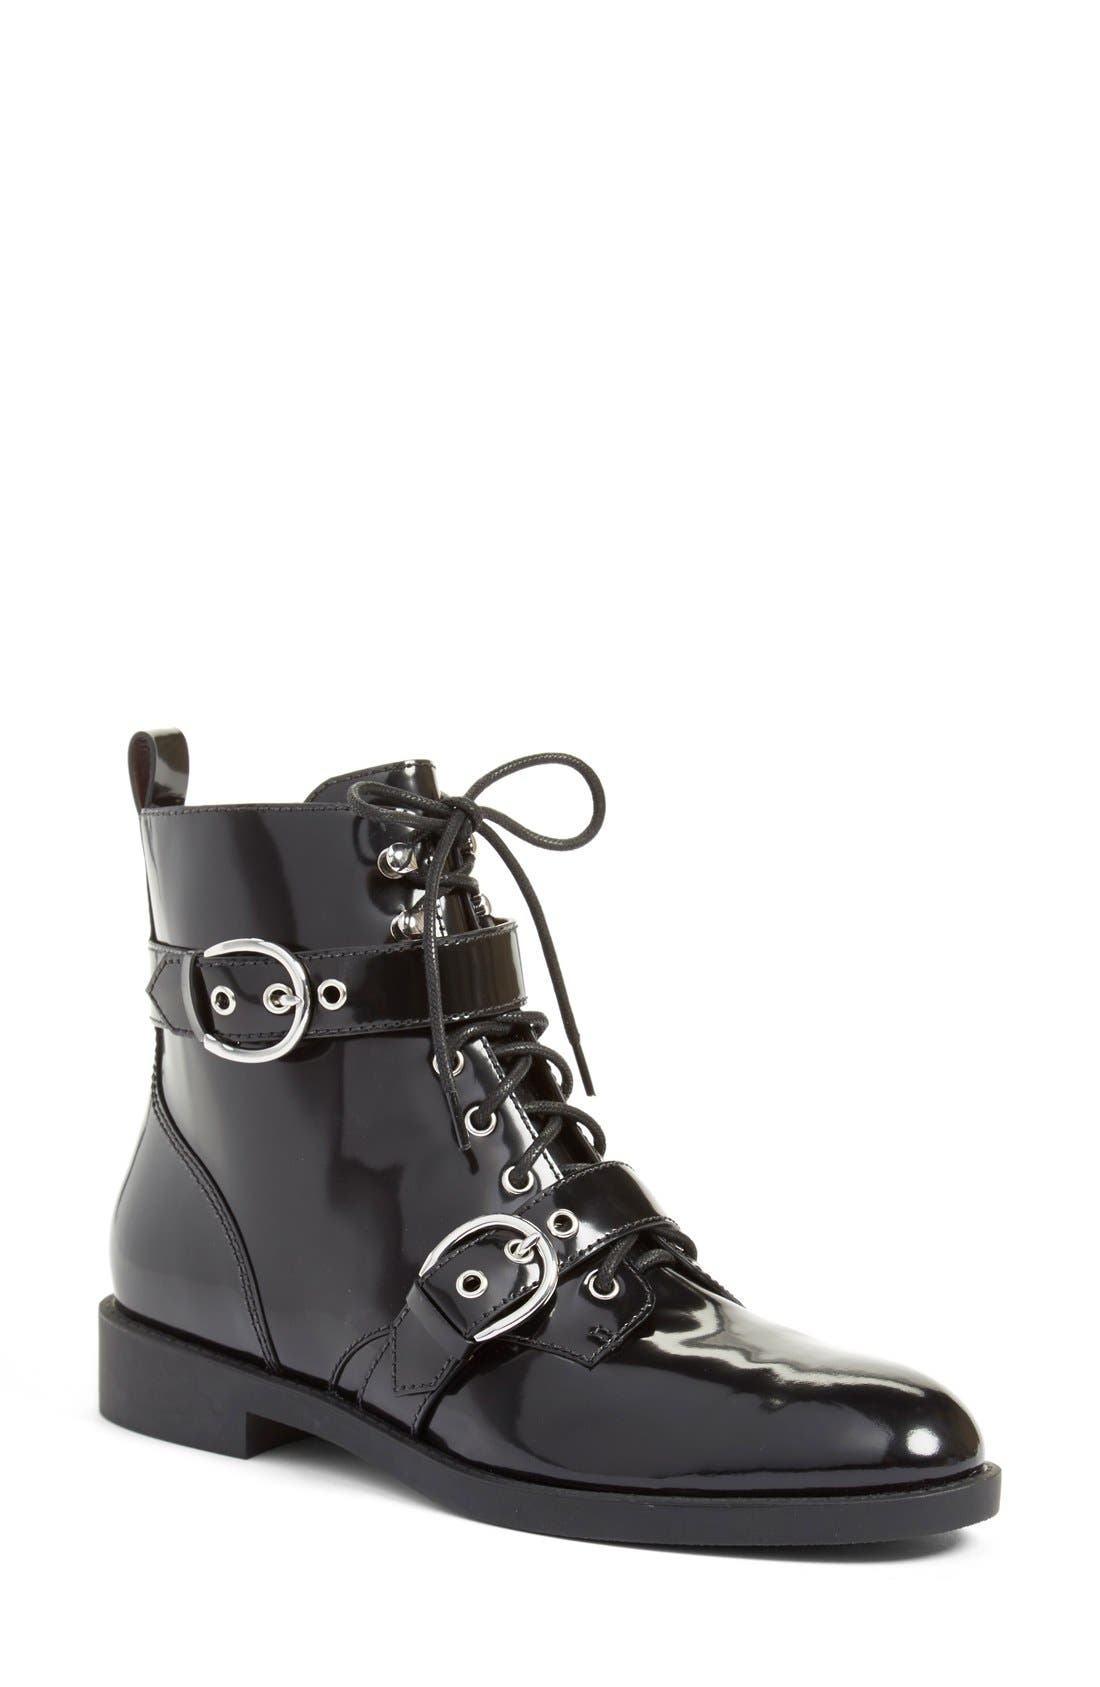 Main Image - MARC JACOBS 'Taylor' Moto Ankle Boot (Women)